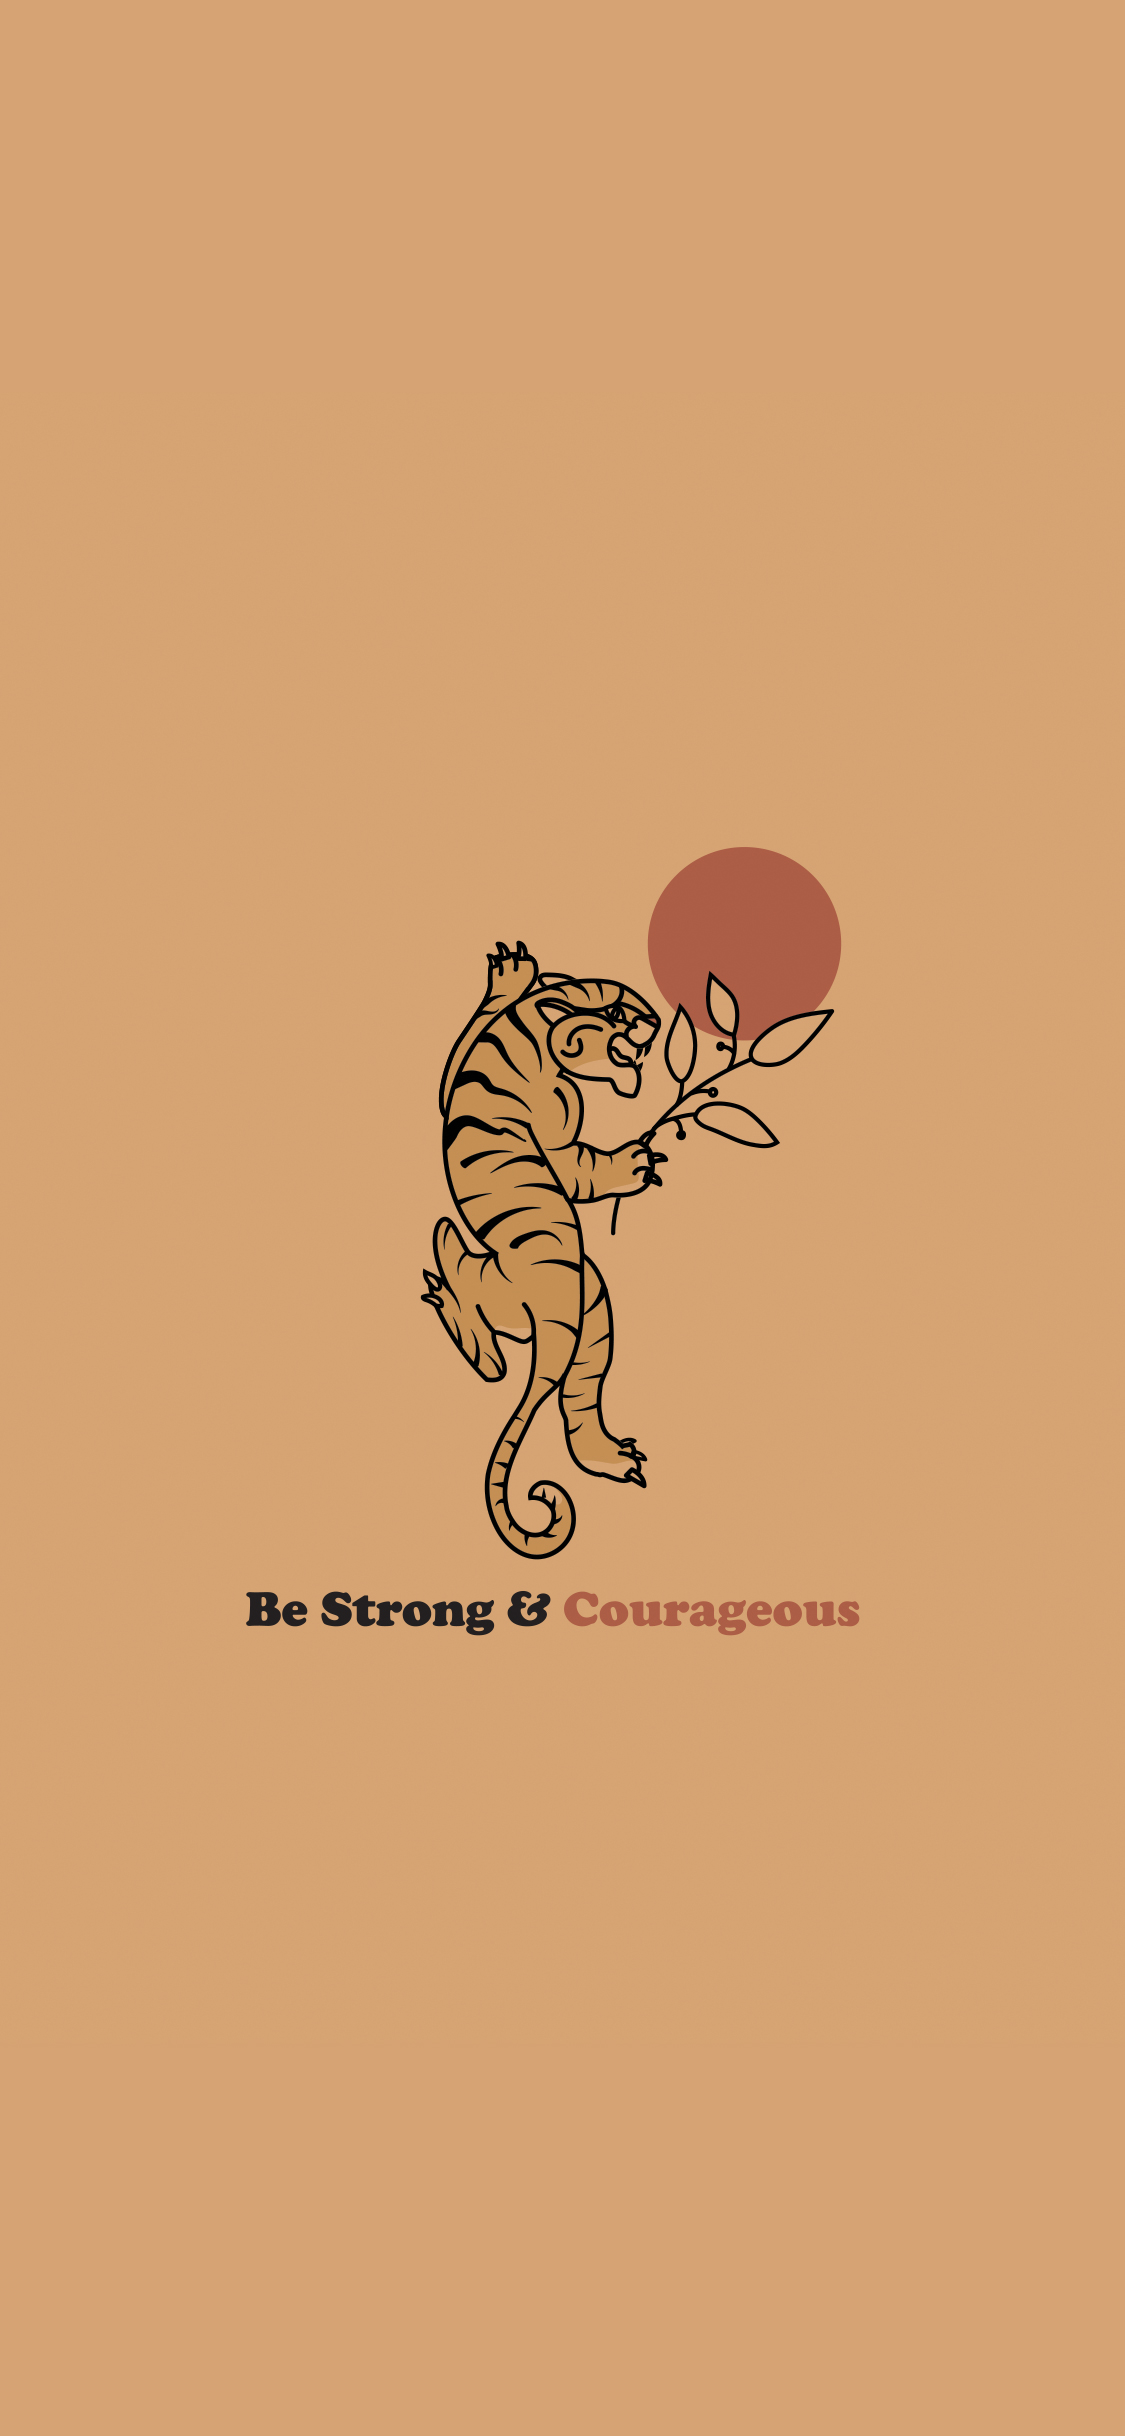 Download Be Strong & Courageous wallpaper